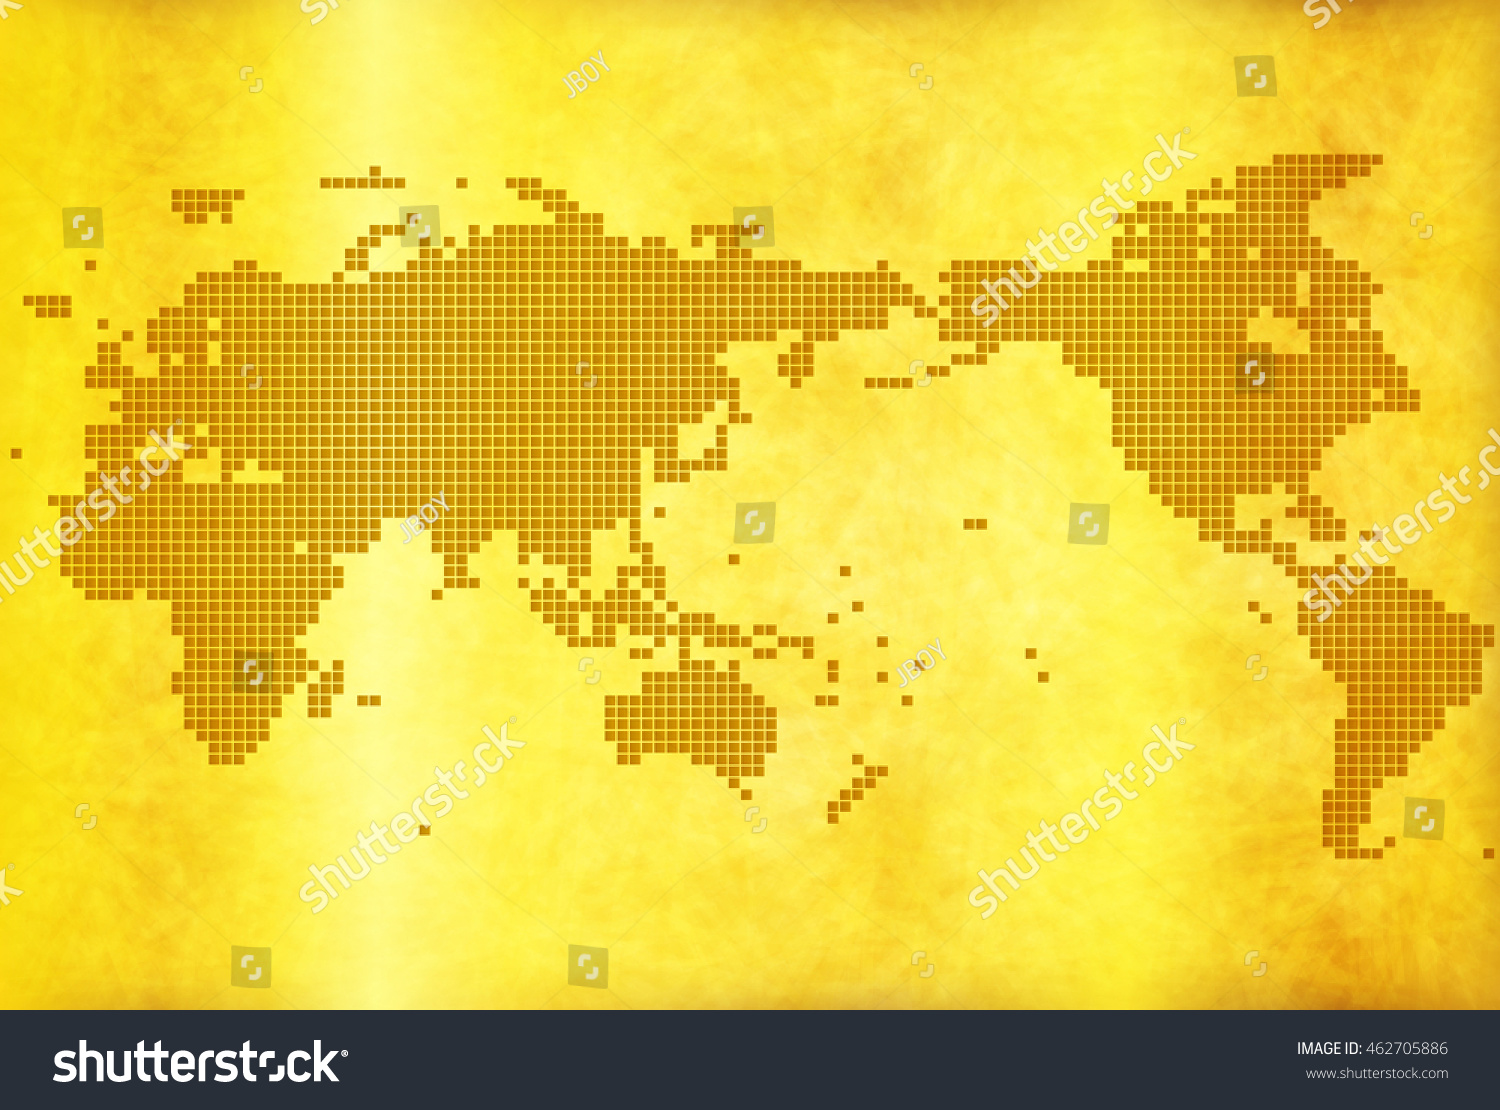 World map gold background stock vector 2018 462705886 shutterstock world map gold background gumiabroncs Gallery